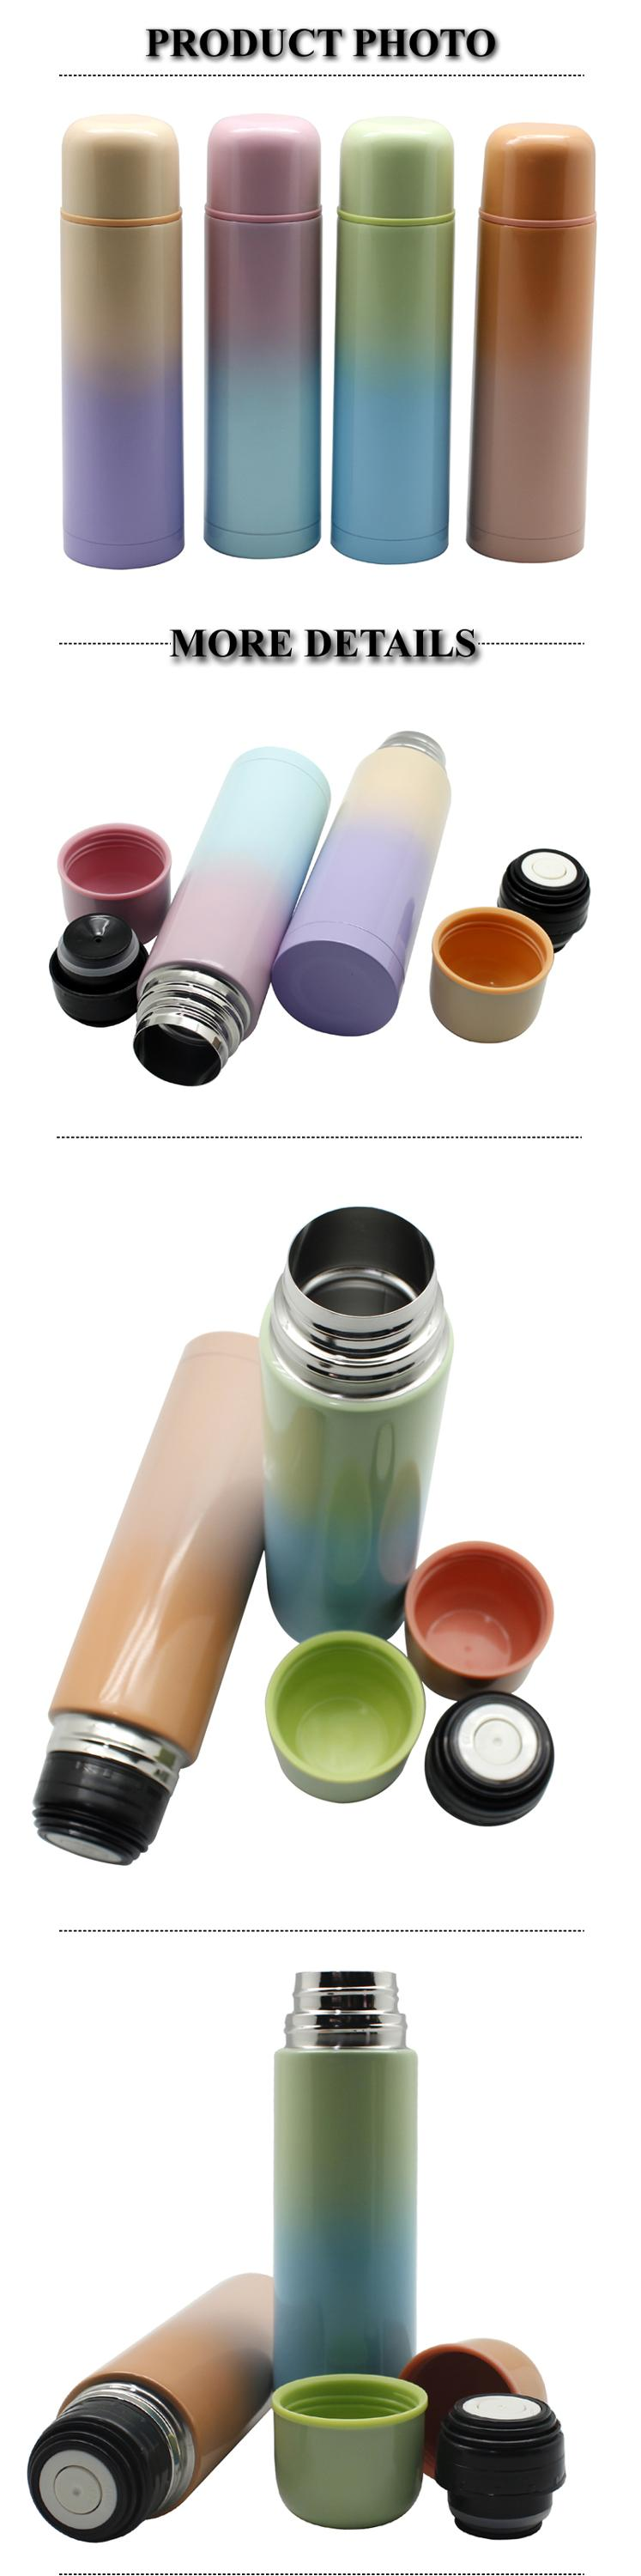 Gradient Ramp Painted Double Wall Stainless Steel #304 inner insulated water bottle